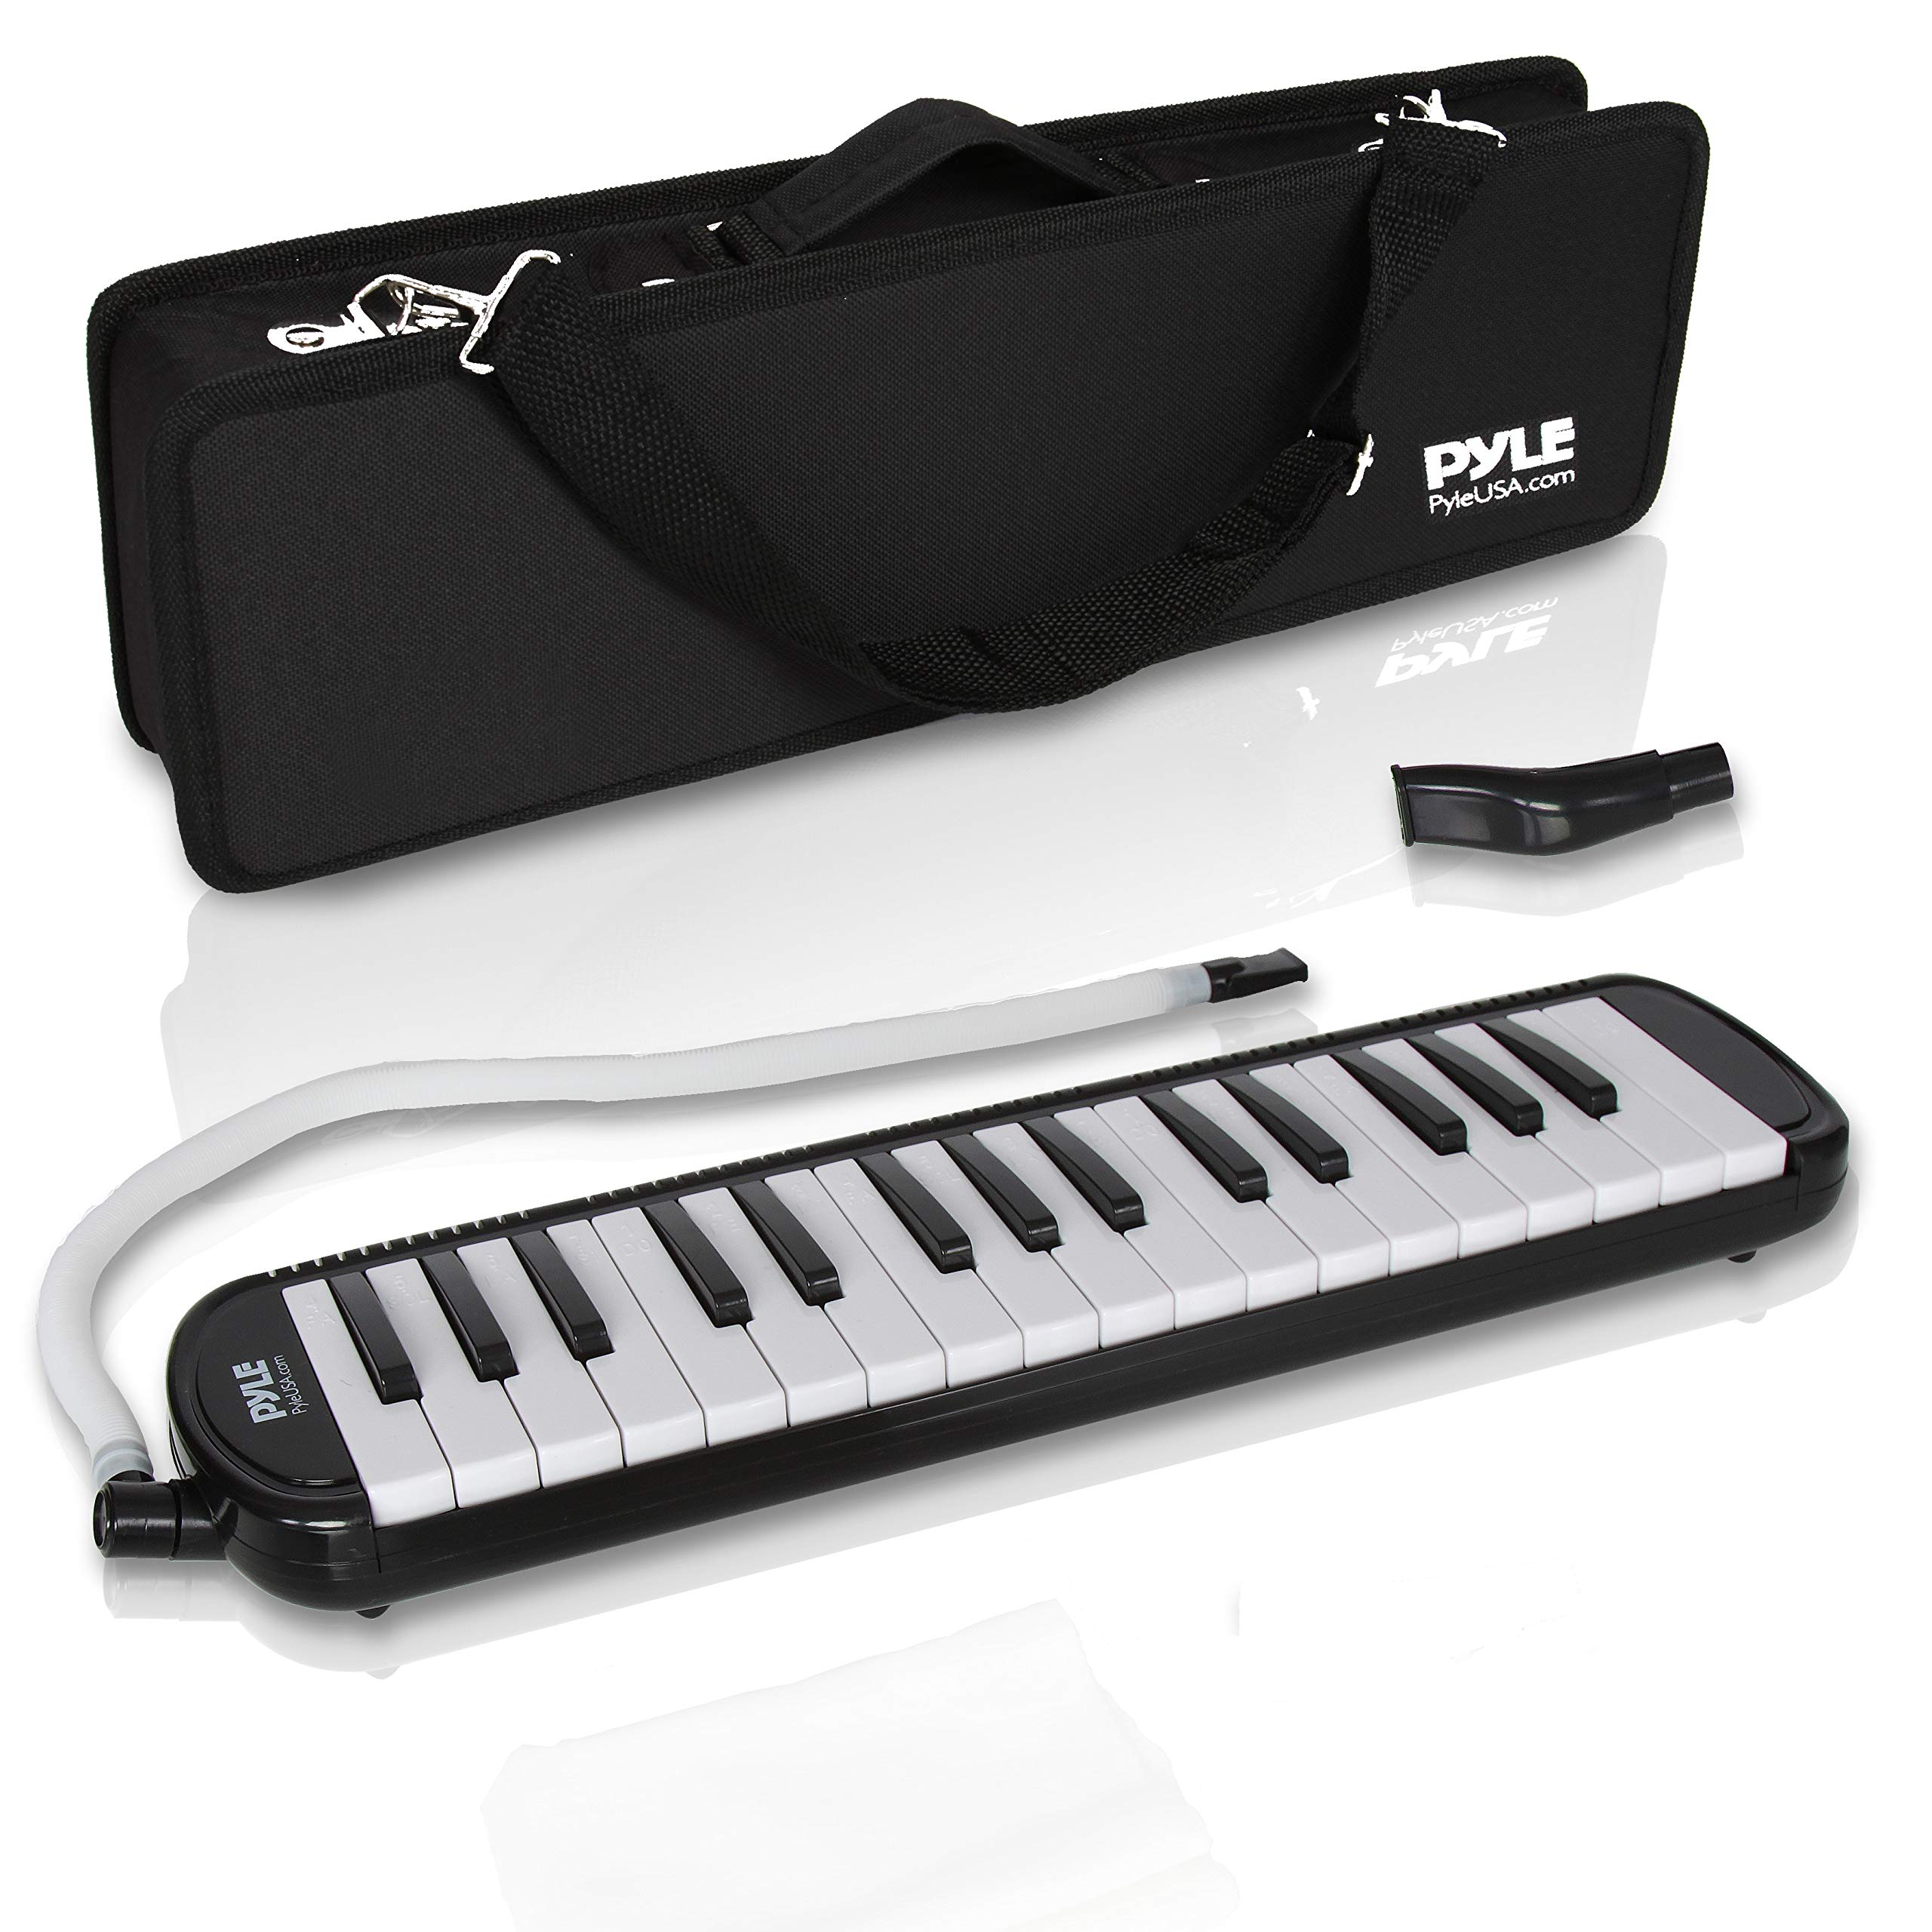 Professional Mouth Piano Melodica Instrument - Mouth Keyboard Piano Organ Melodica Set w/Mouthpiece, Tube Accessories, for Beginner or Band - Pyle (Black) by Pyle (Image #1)